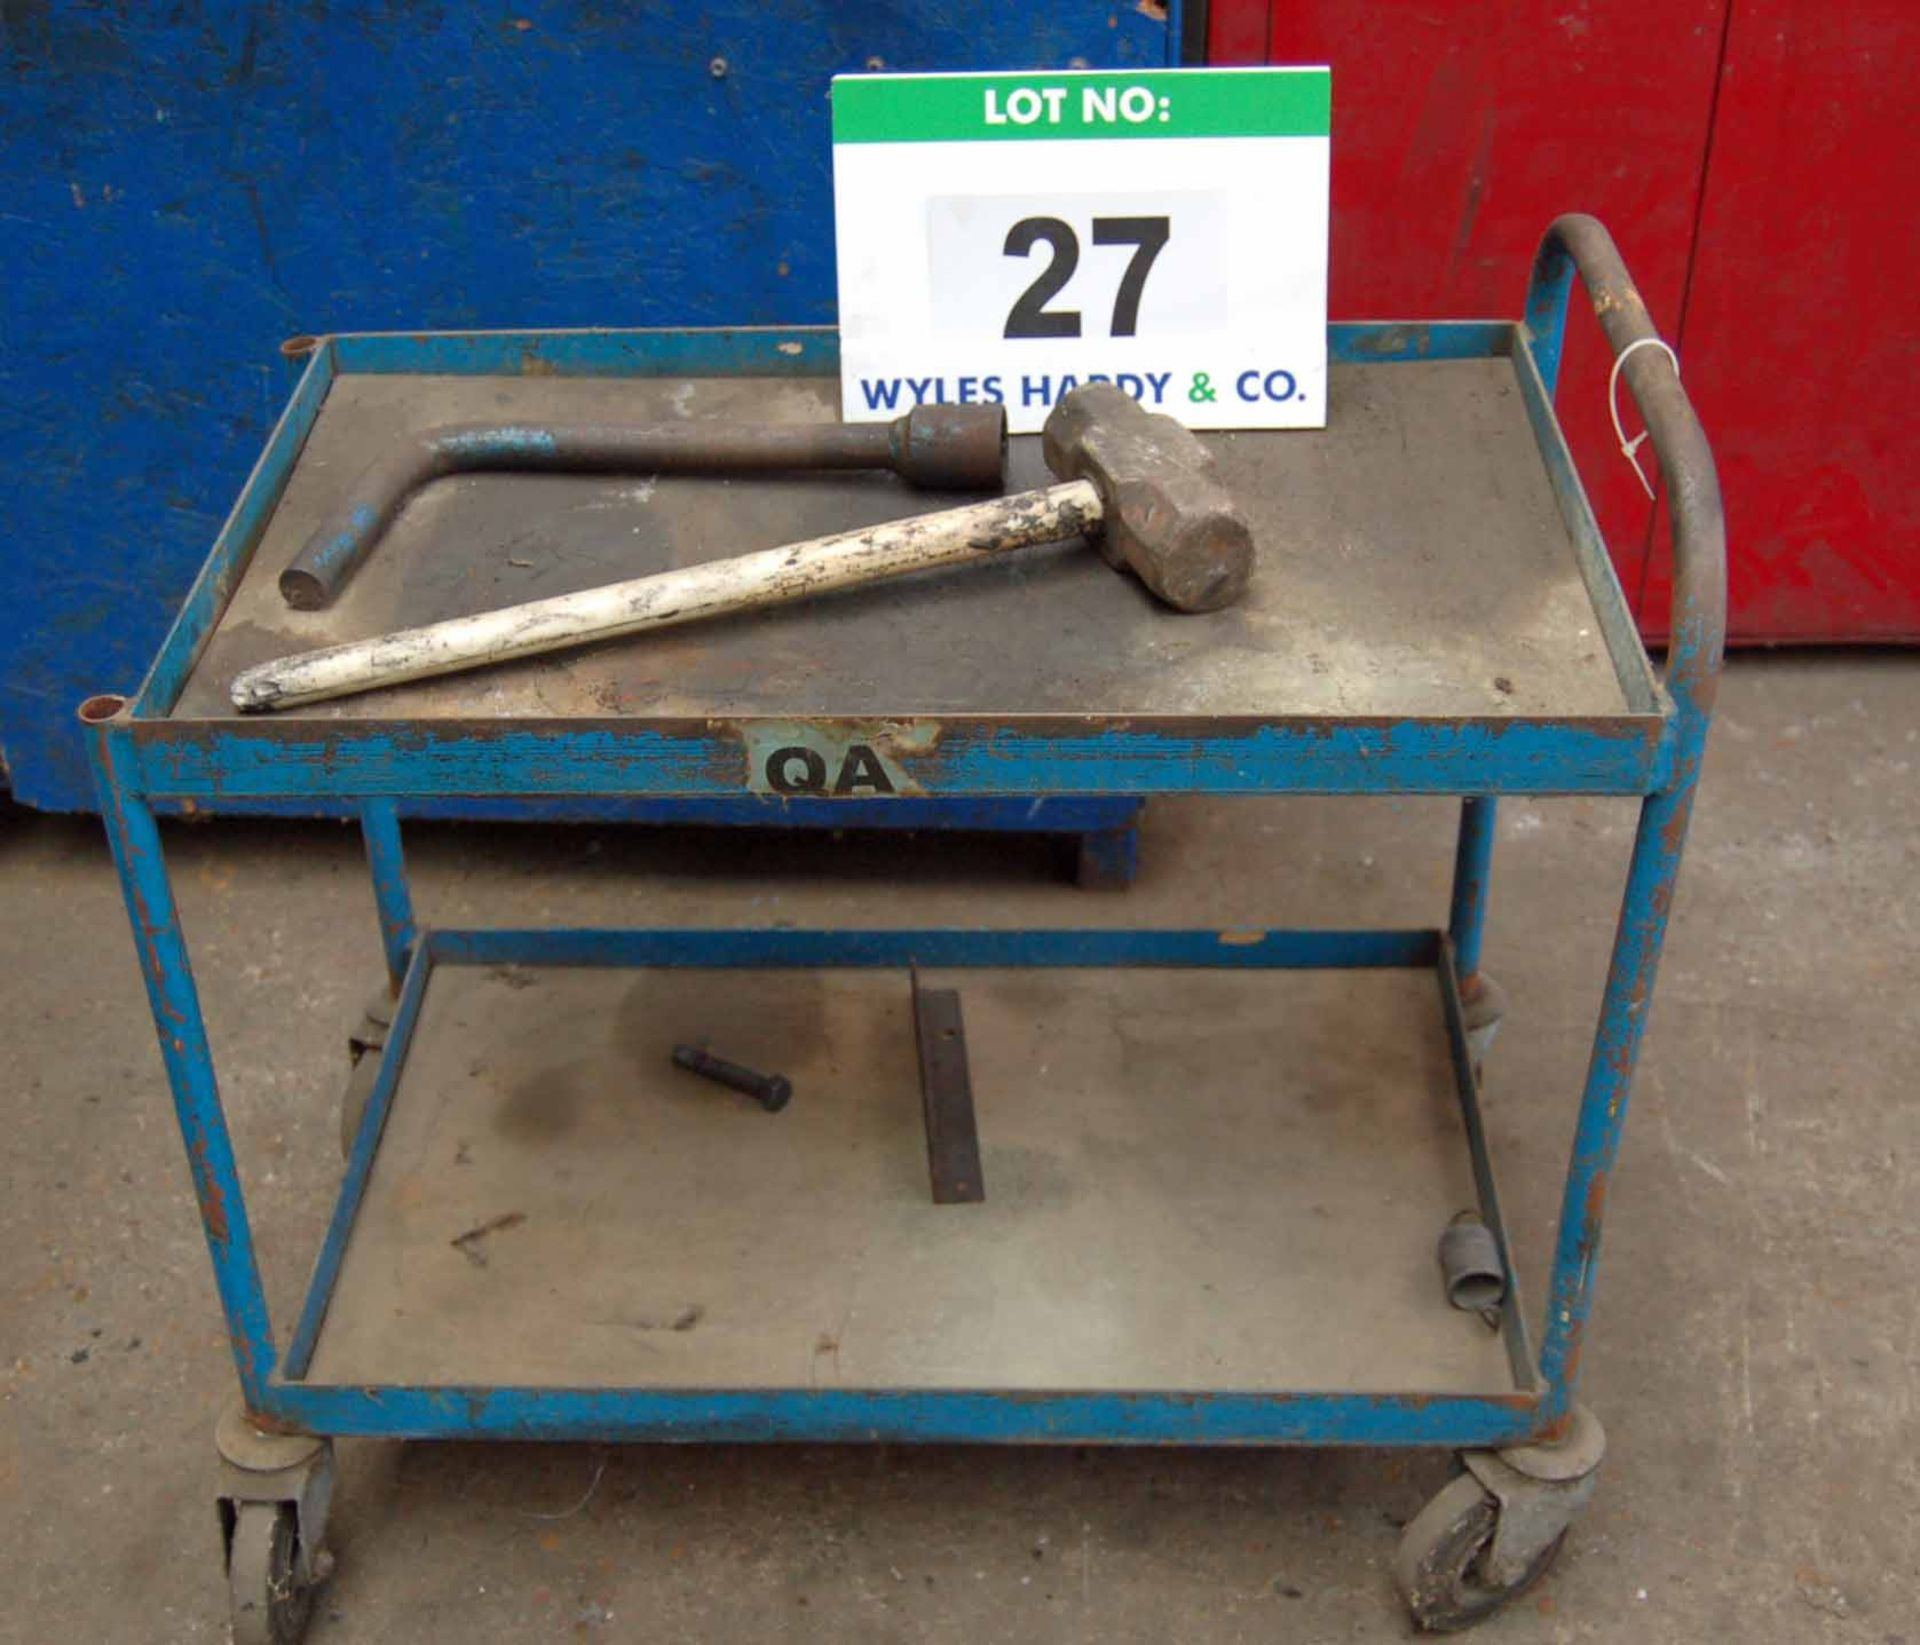 Lot 27 - A Steel Framed 2-Tier Trolley, A Steel Lump Hammer and A Heavy Duty Wheel Nut Wrench